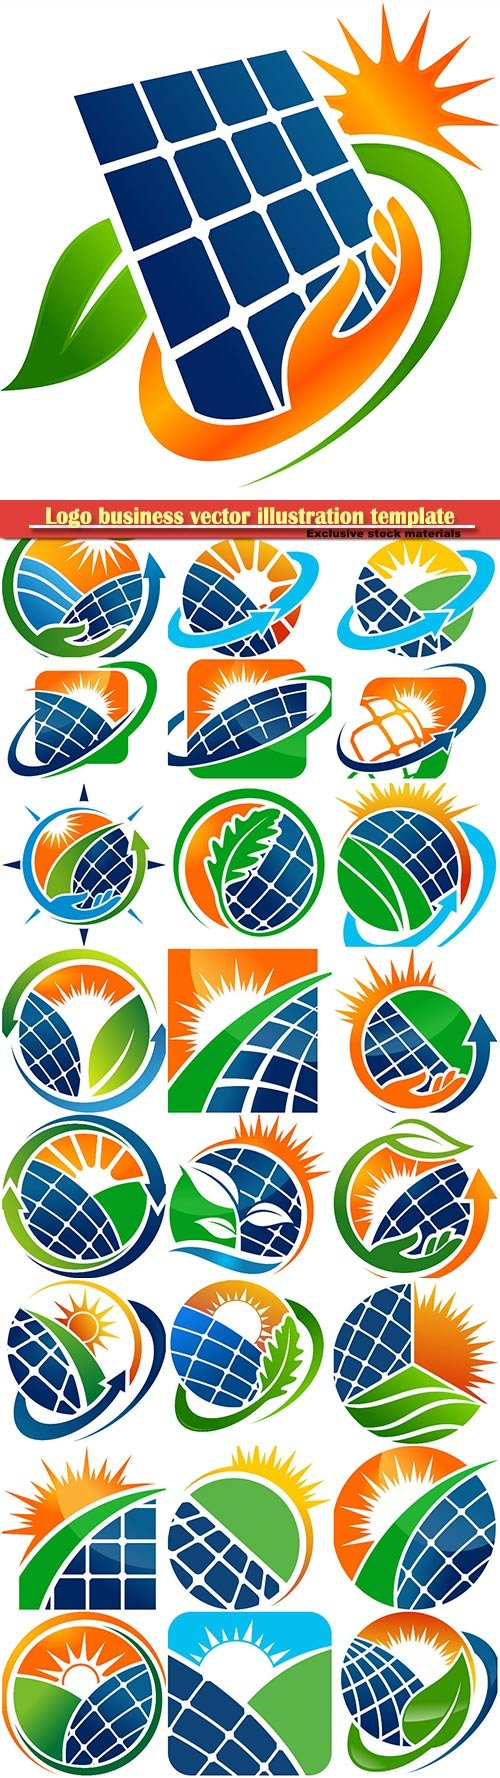 Nature solar energy logo business vector illustration template # 84